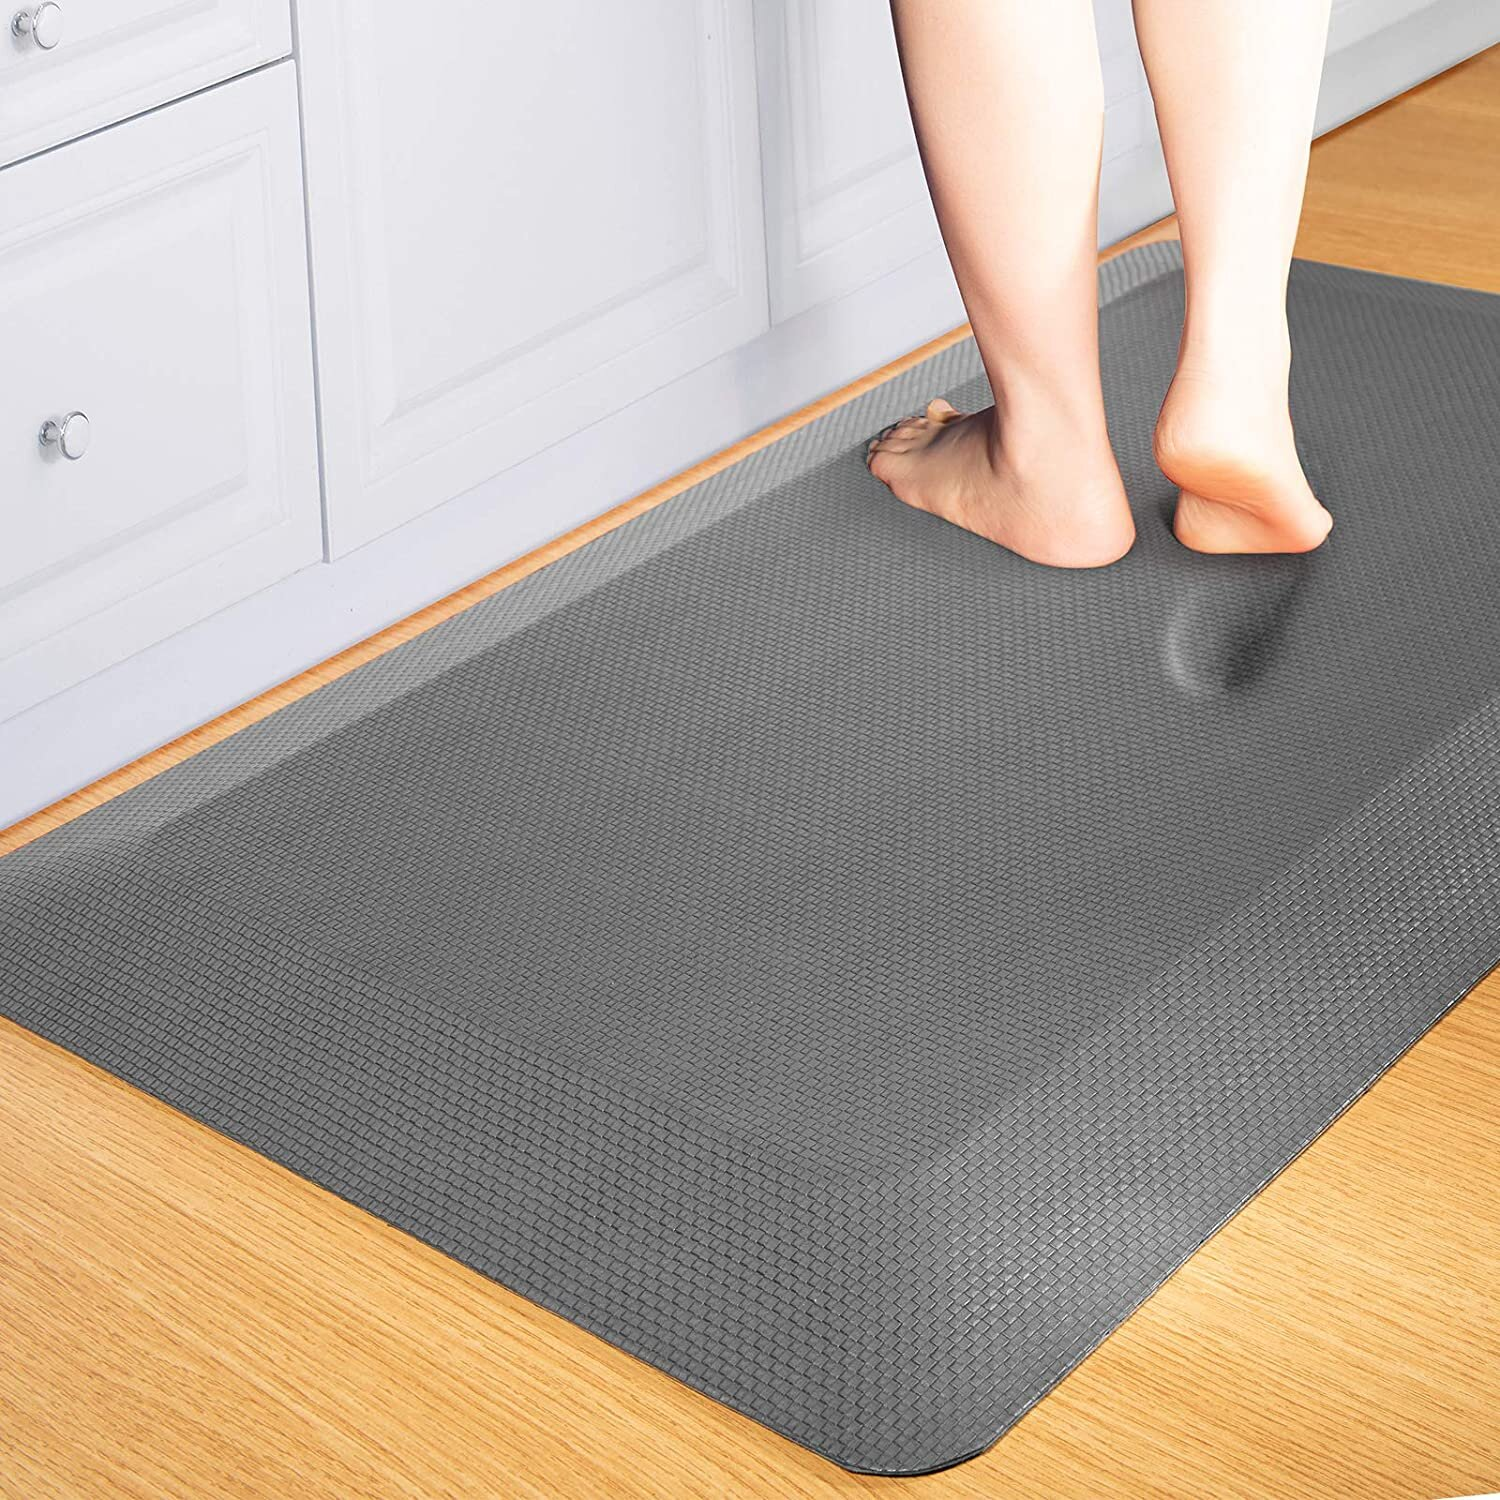 Anti Fatigue Mat Kitchen Mats Cushioned,Thicken Core Foam  9X9x9/9 Inch,Perfect For Kitchens,Standing Desks And Garages,Phthalate  Free,Relieves ...